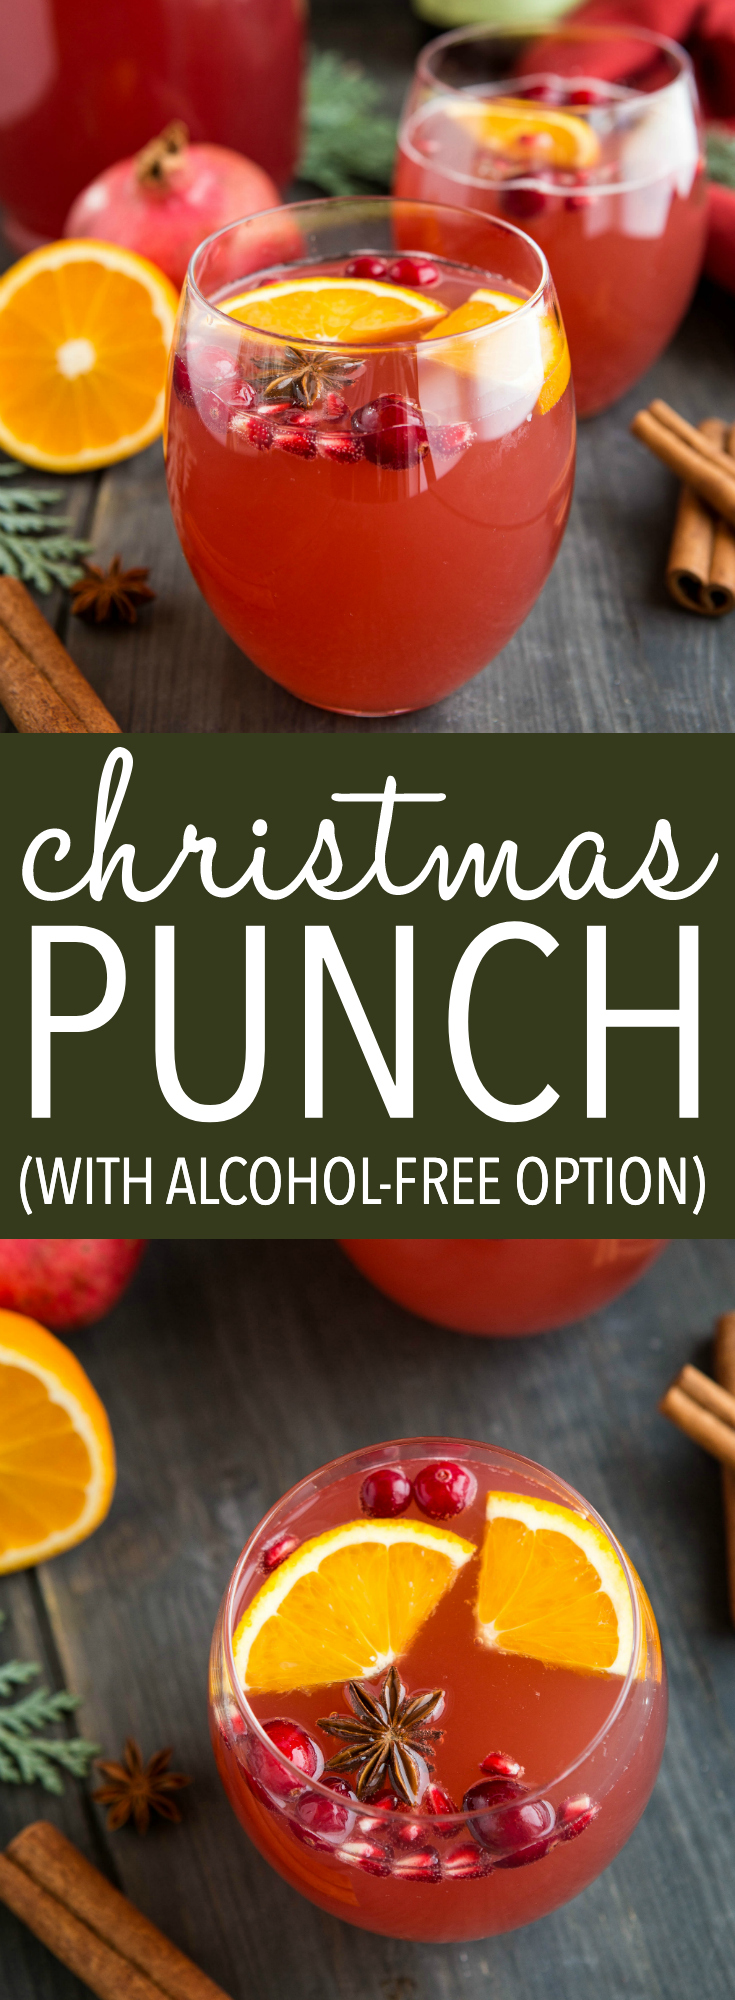 christmas punch pinterest